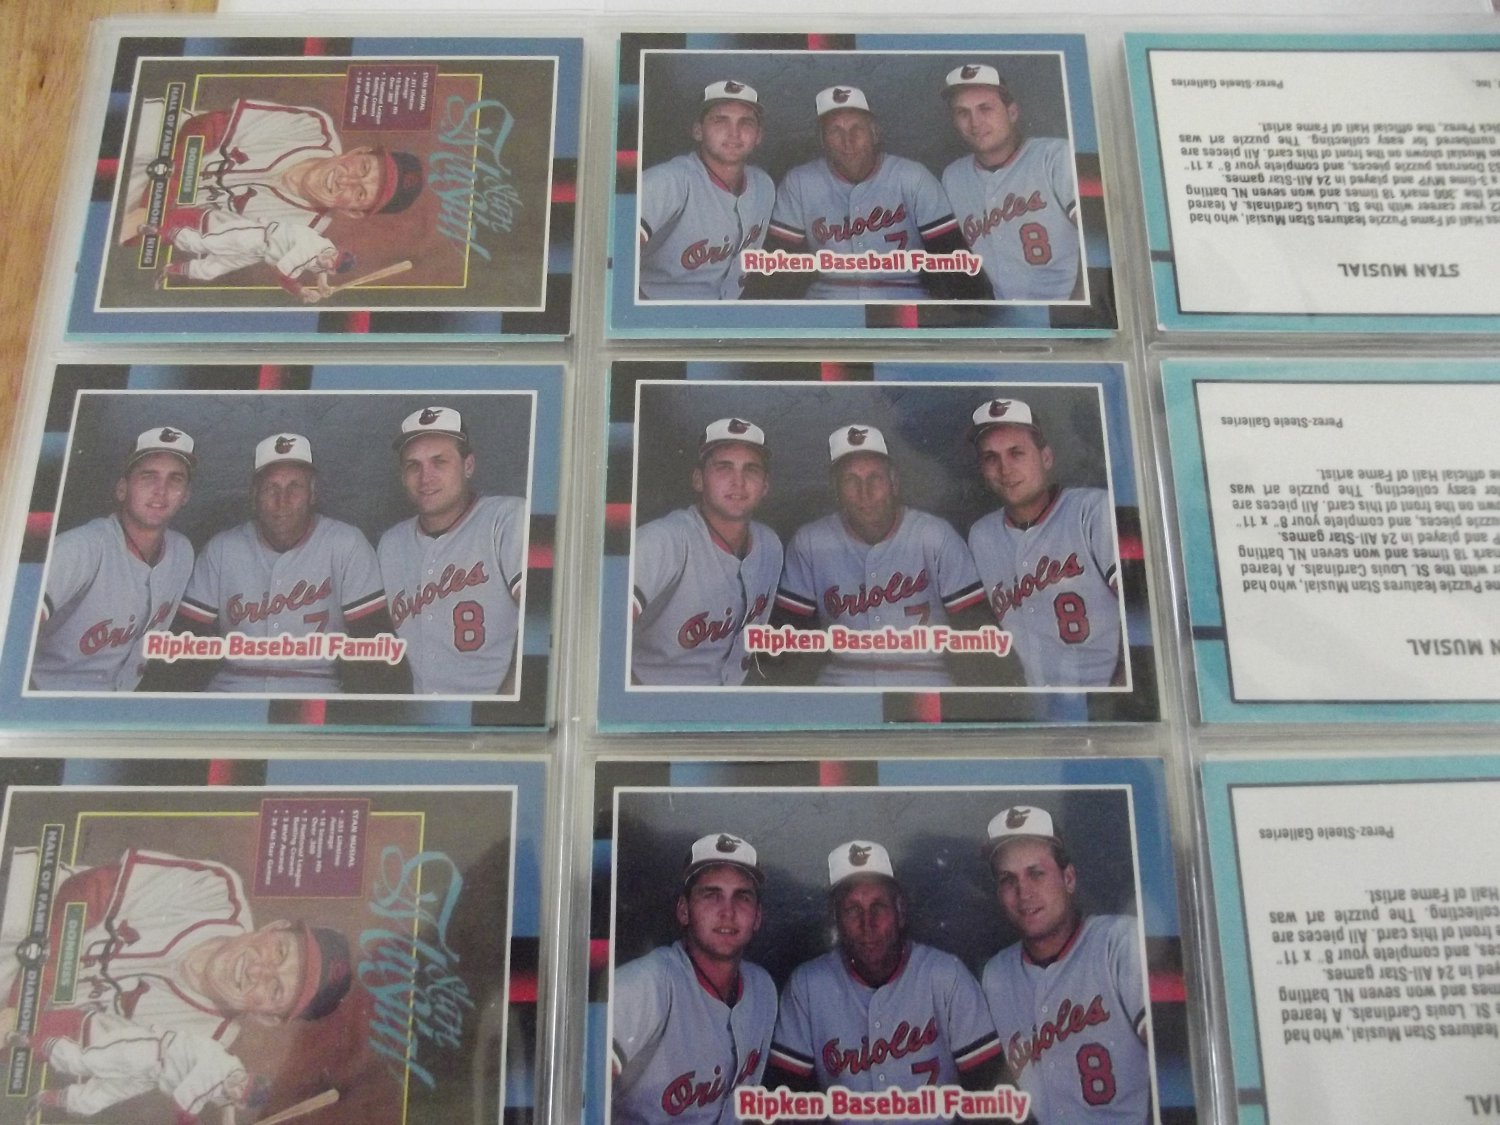 1988 Donruss Ripken Baseball Family Insert Card